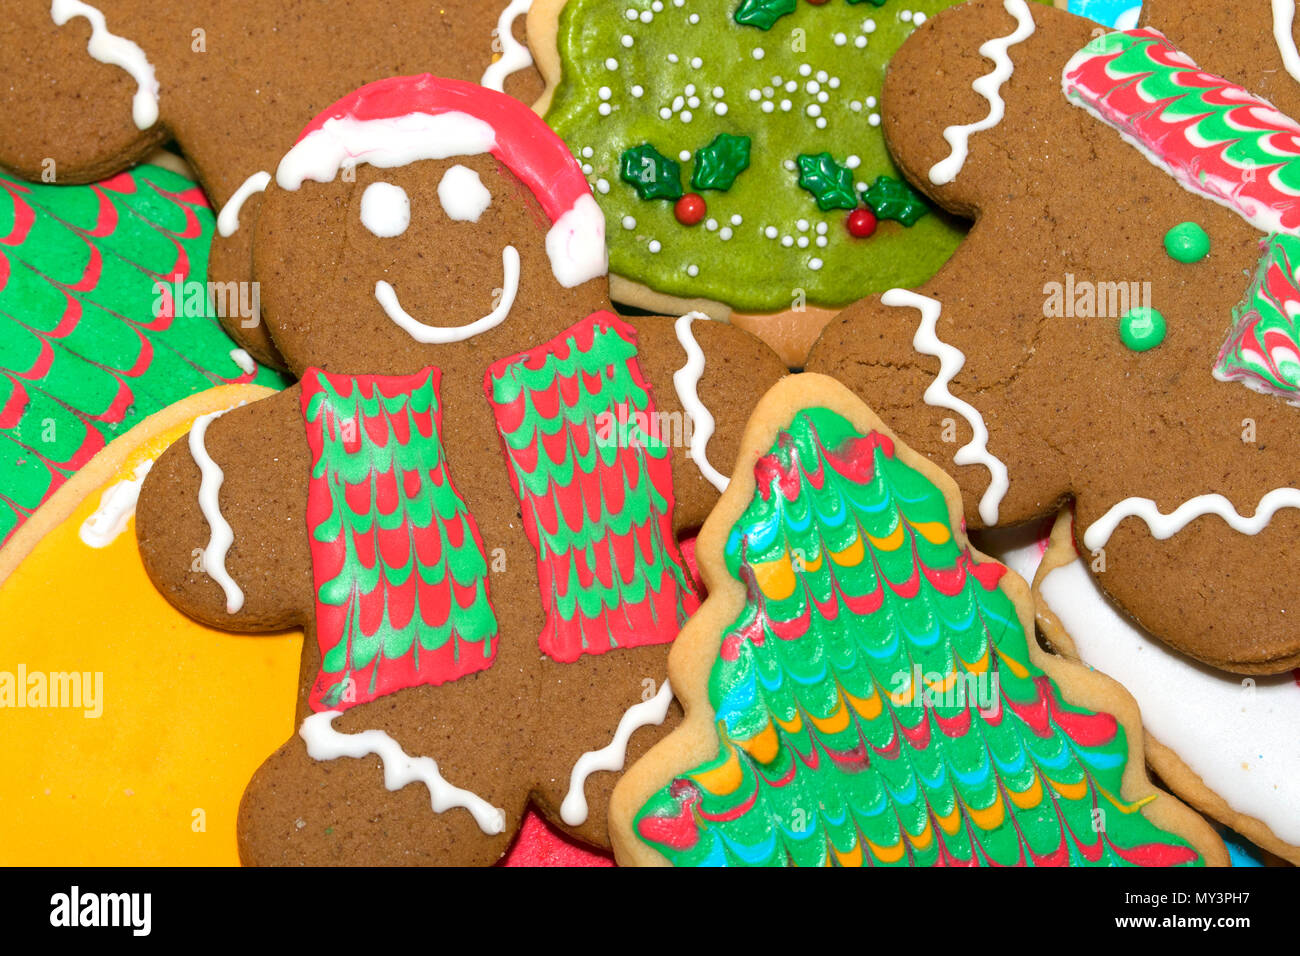 Frosted Gingerbread Man Stock Photos Frosted Gingerbread Man Stock